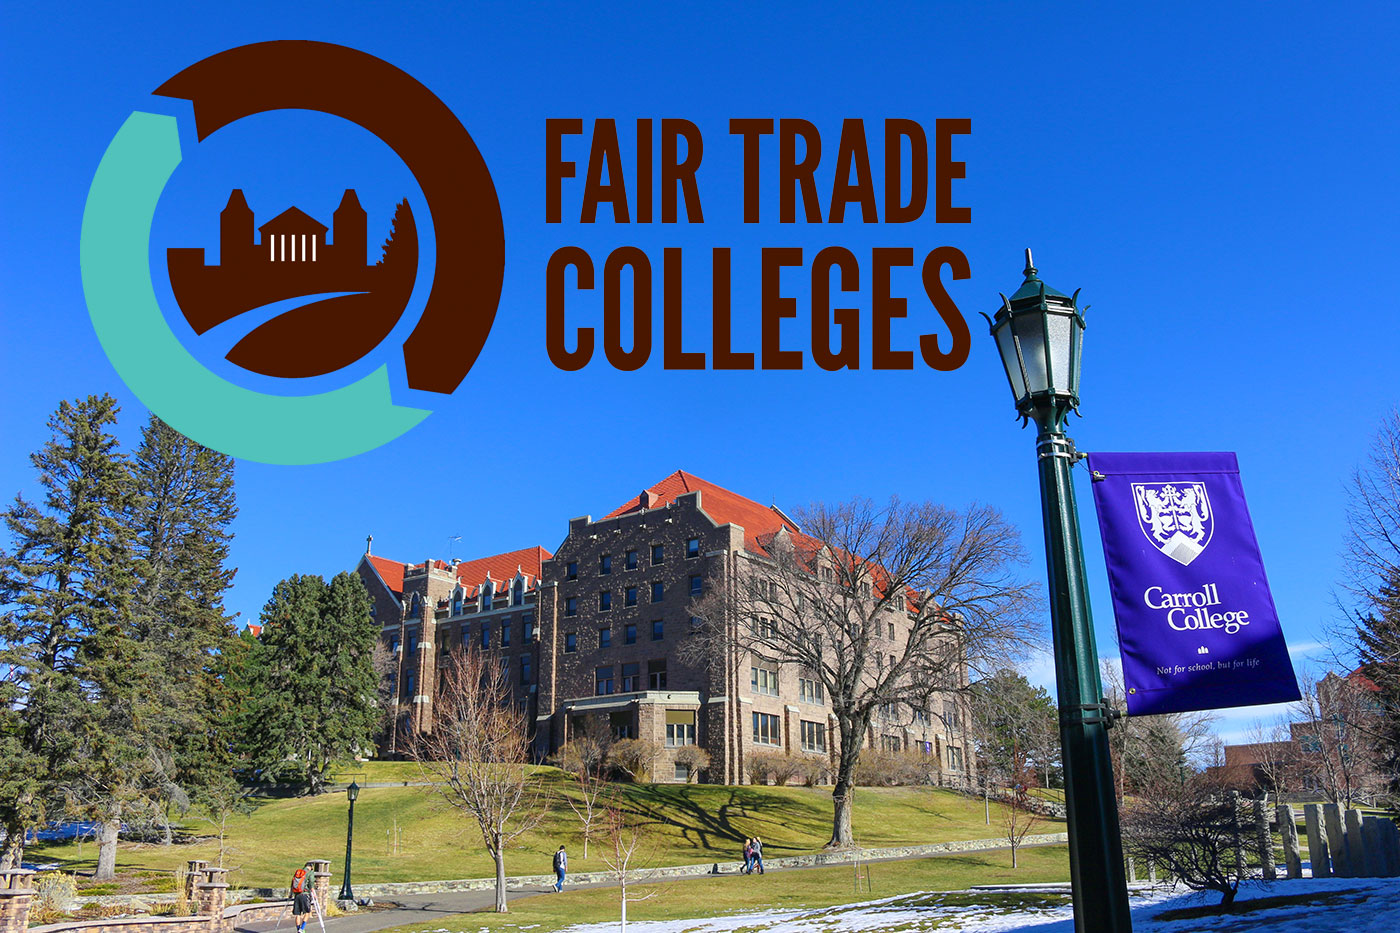 Fair Trade Colleges, Carroll College - View of St Charles in the fall